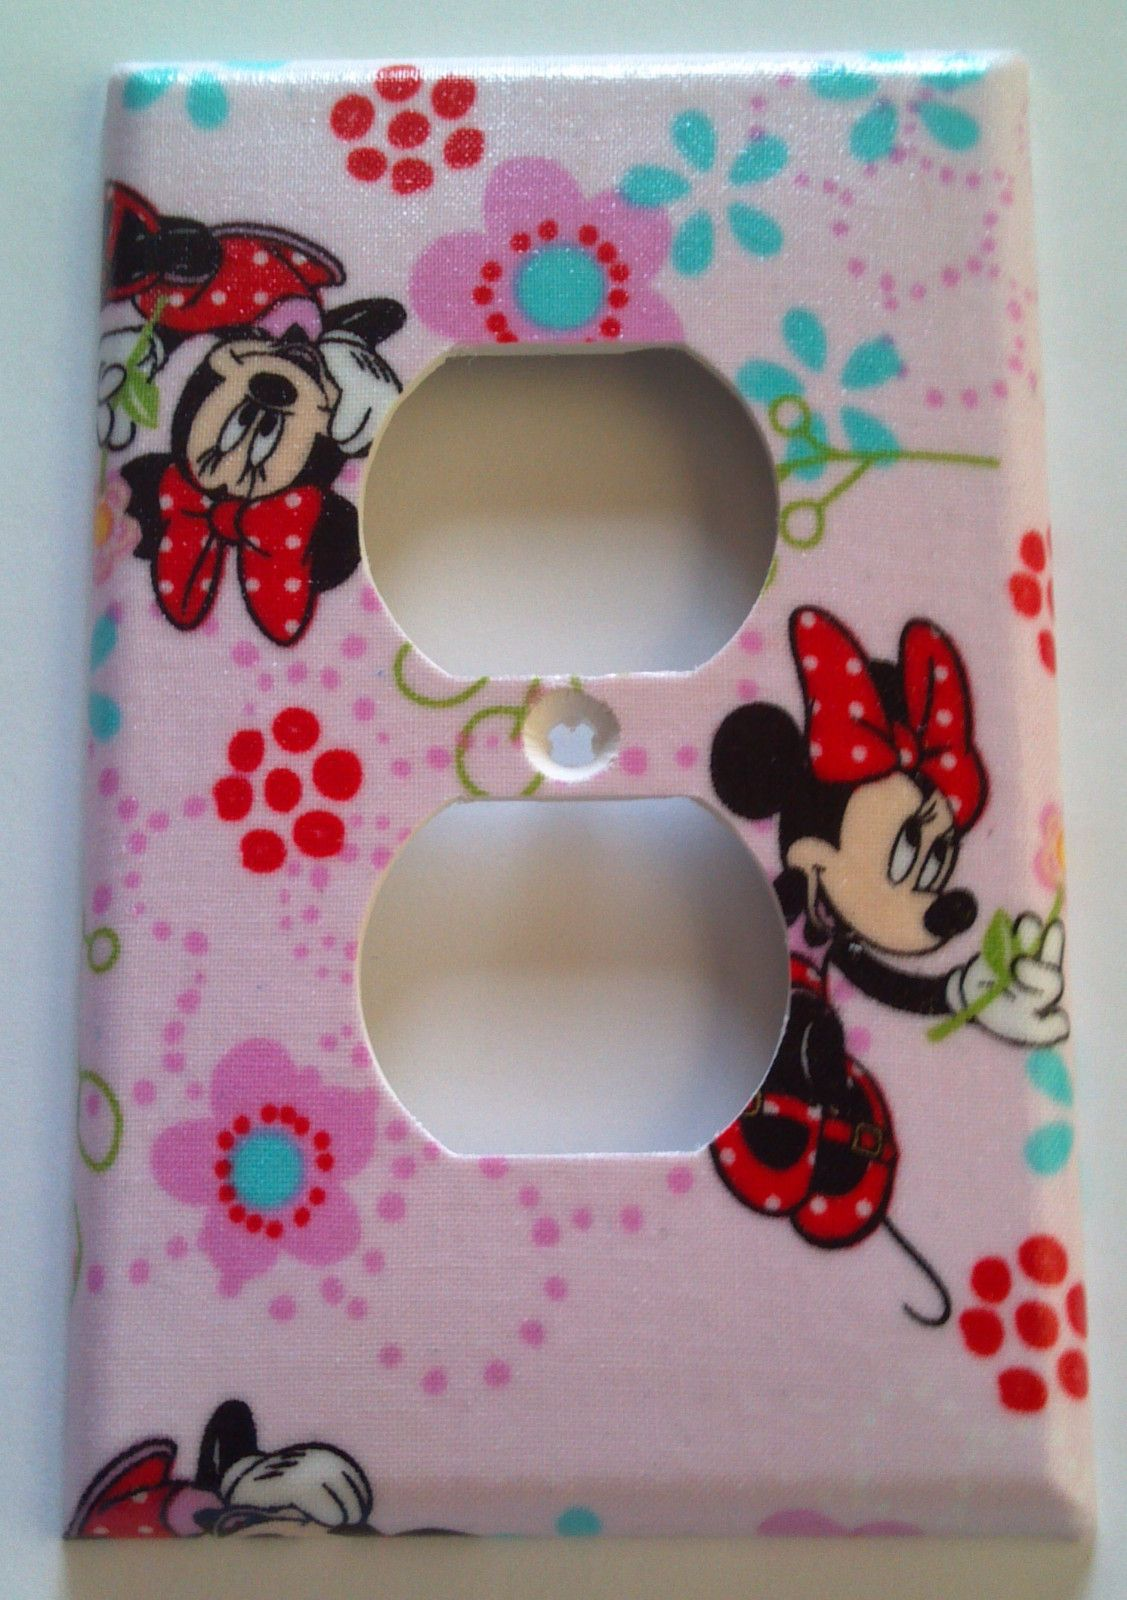 Cocina Minnie Mouse Decoracion De La Cocina Disney Belongdigital Club